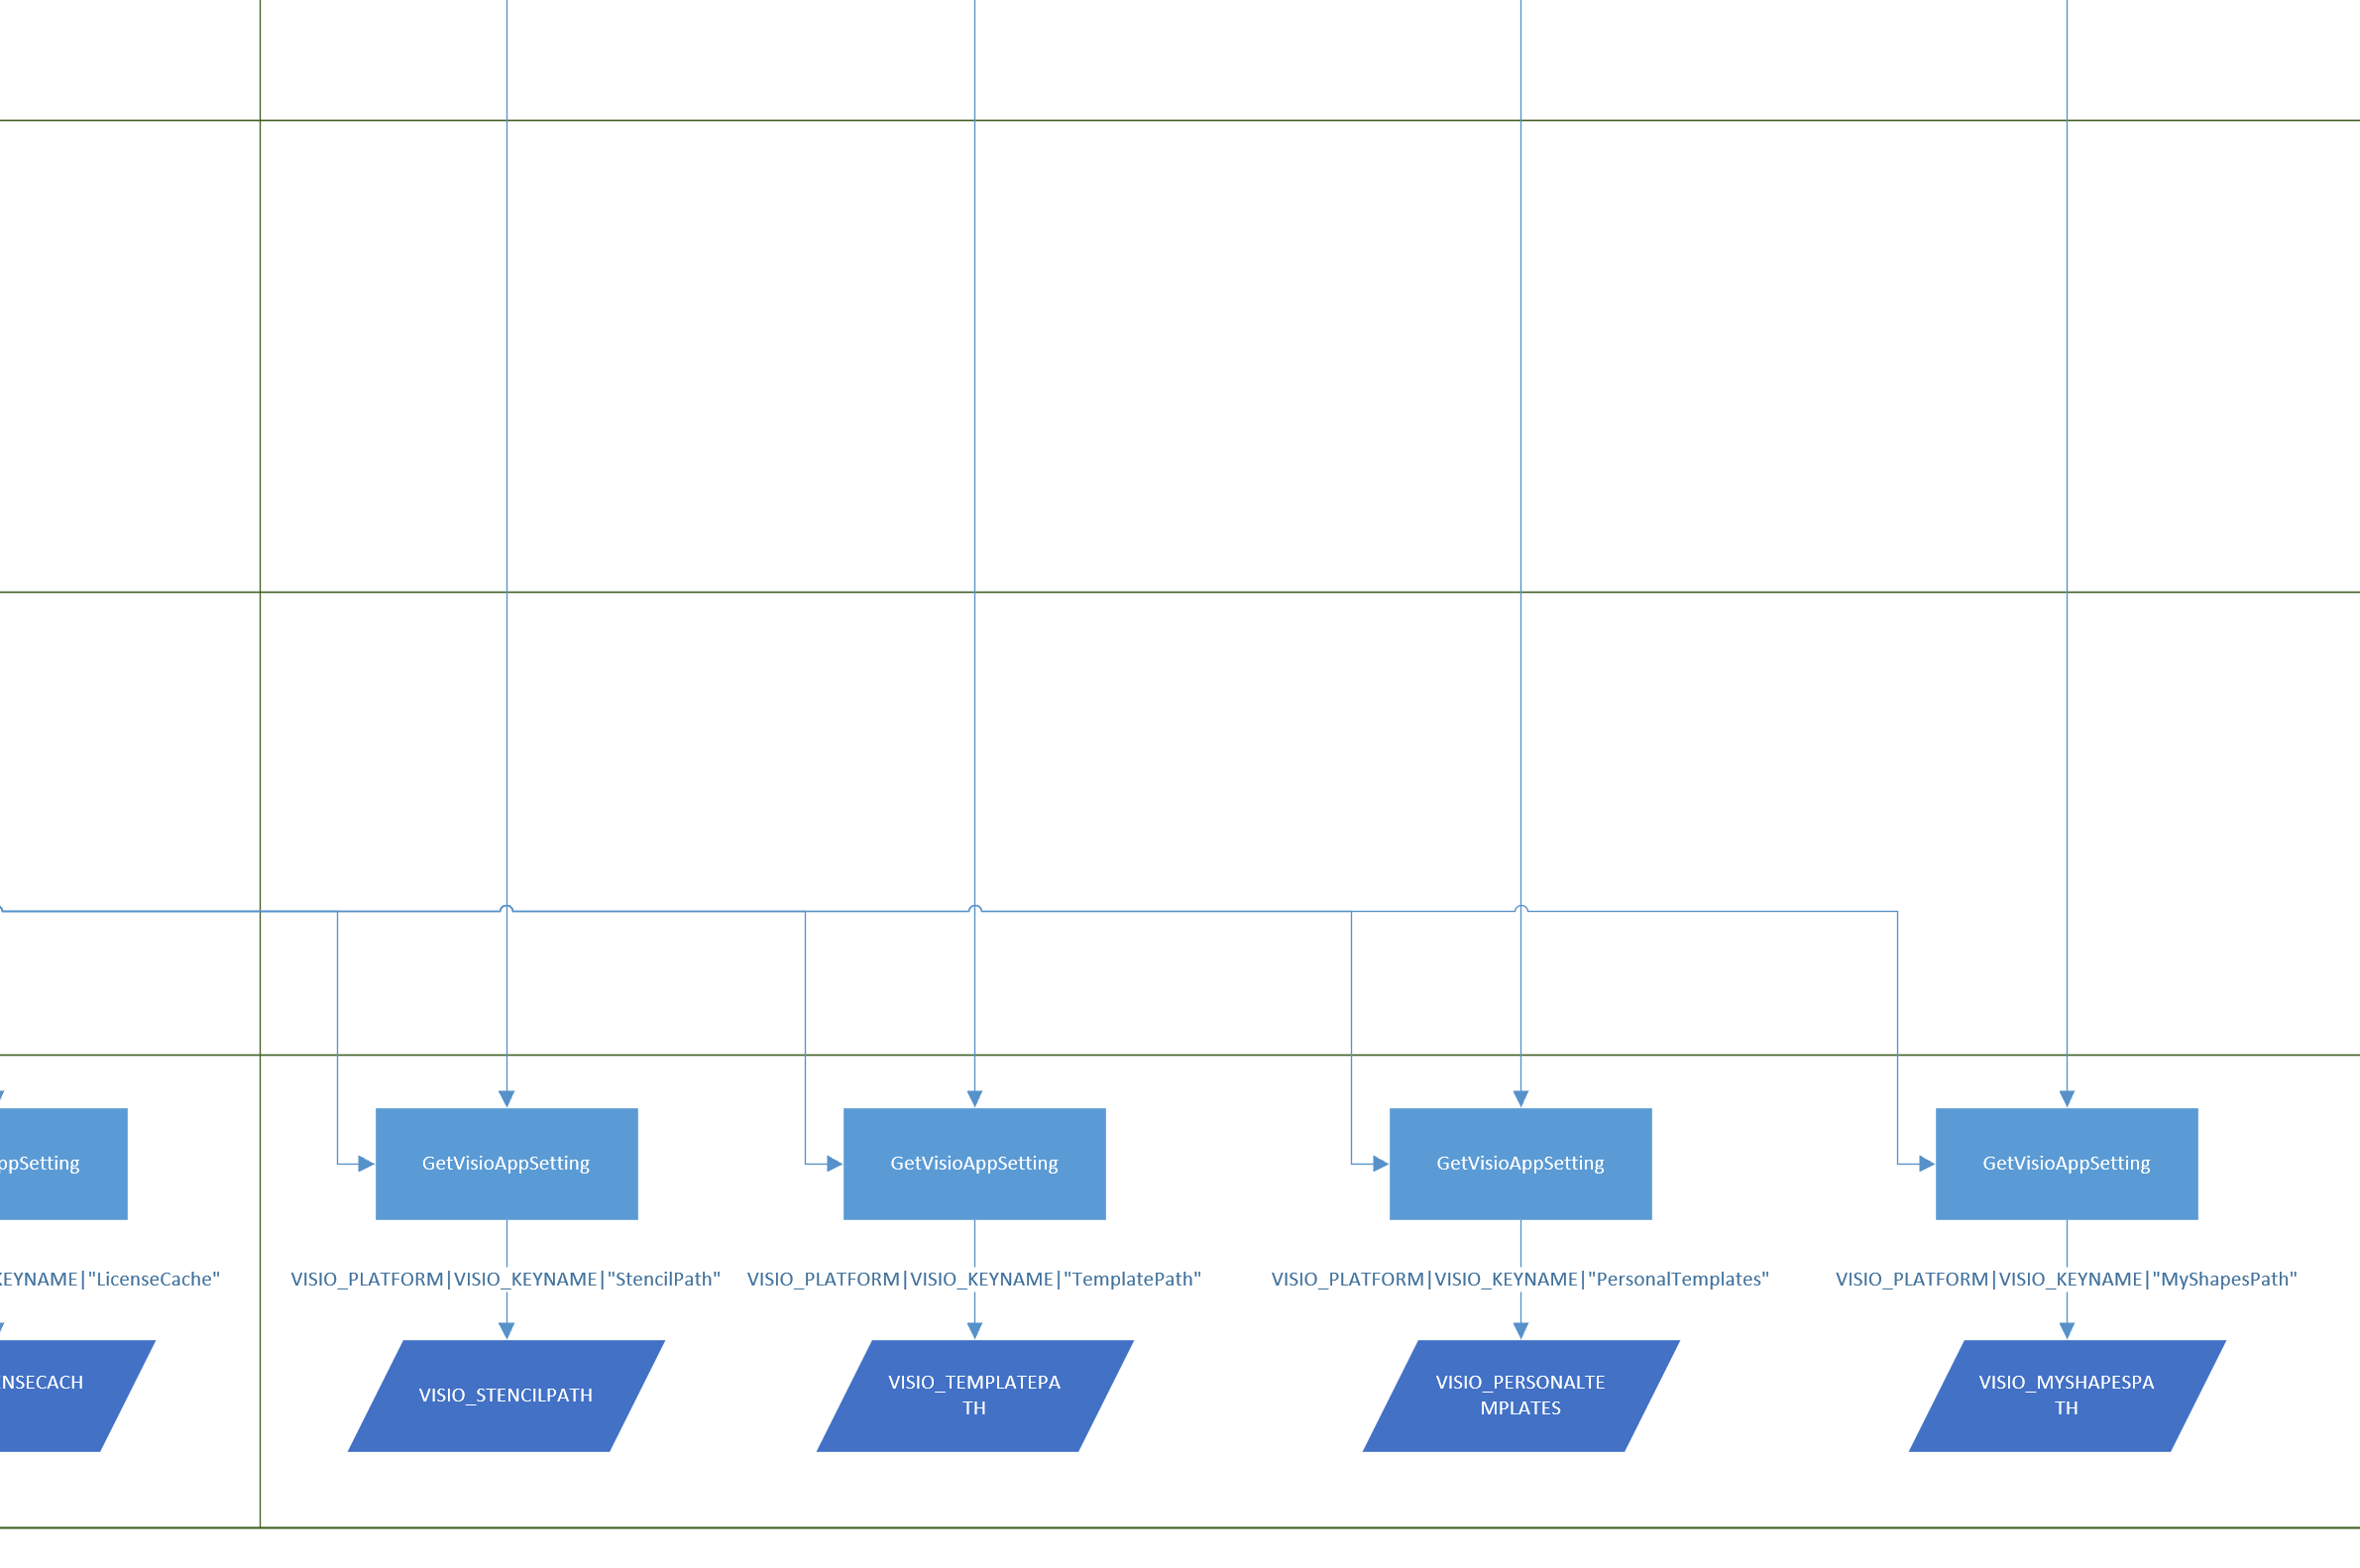 Visio | bVisual - for people interested in Microsoft Visio